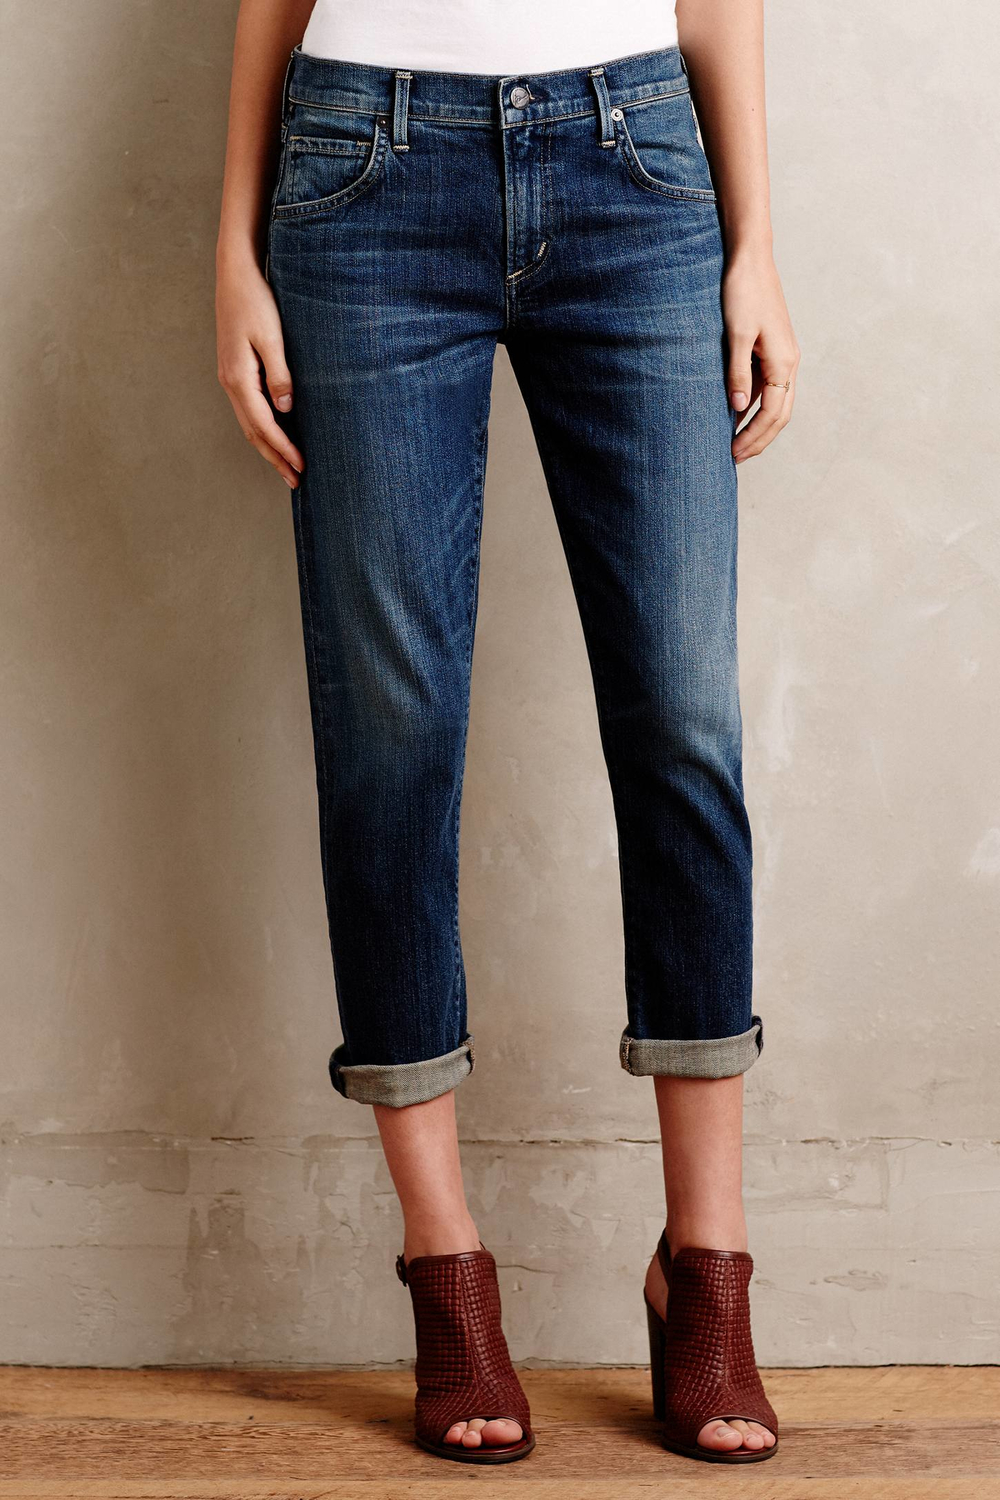 Emerson Crop slim boyfriend jeans Citizens Of Humanity 6qKR3